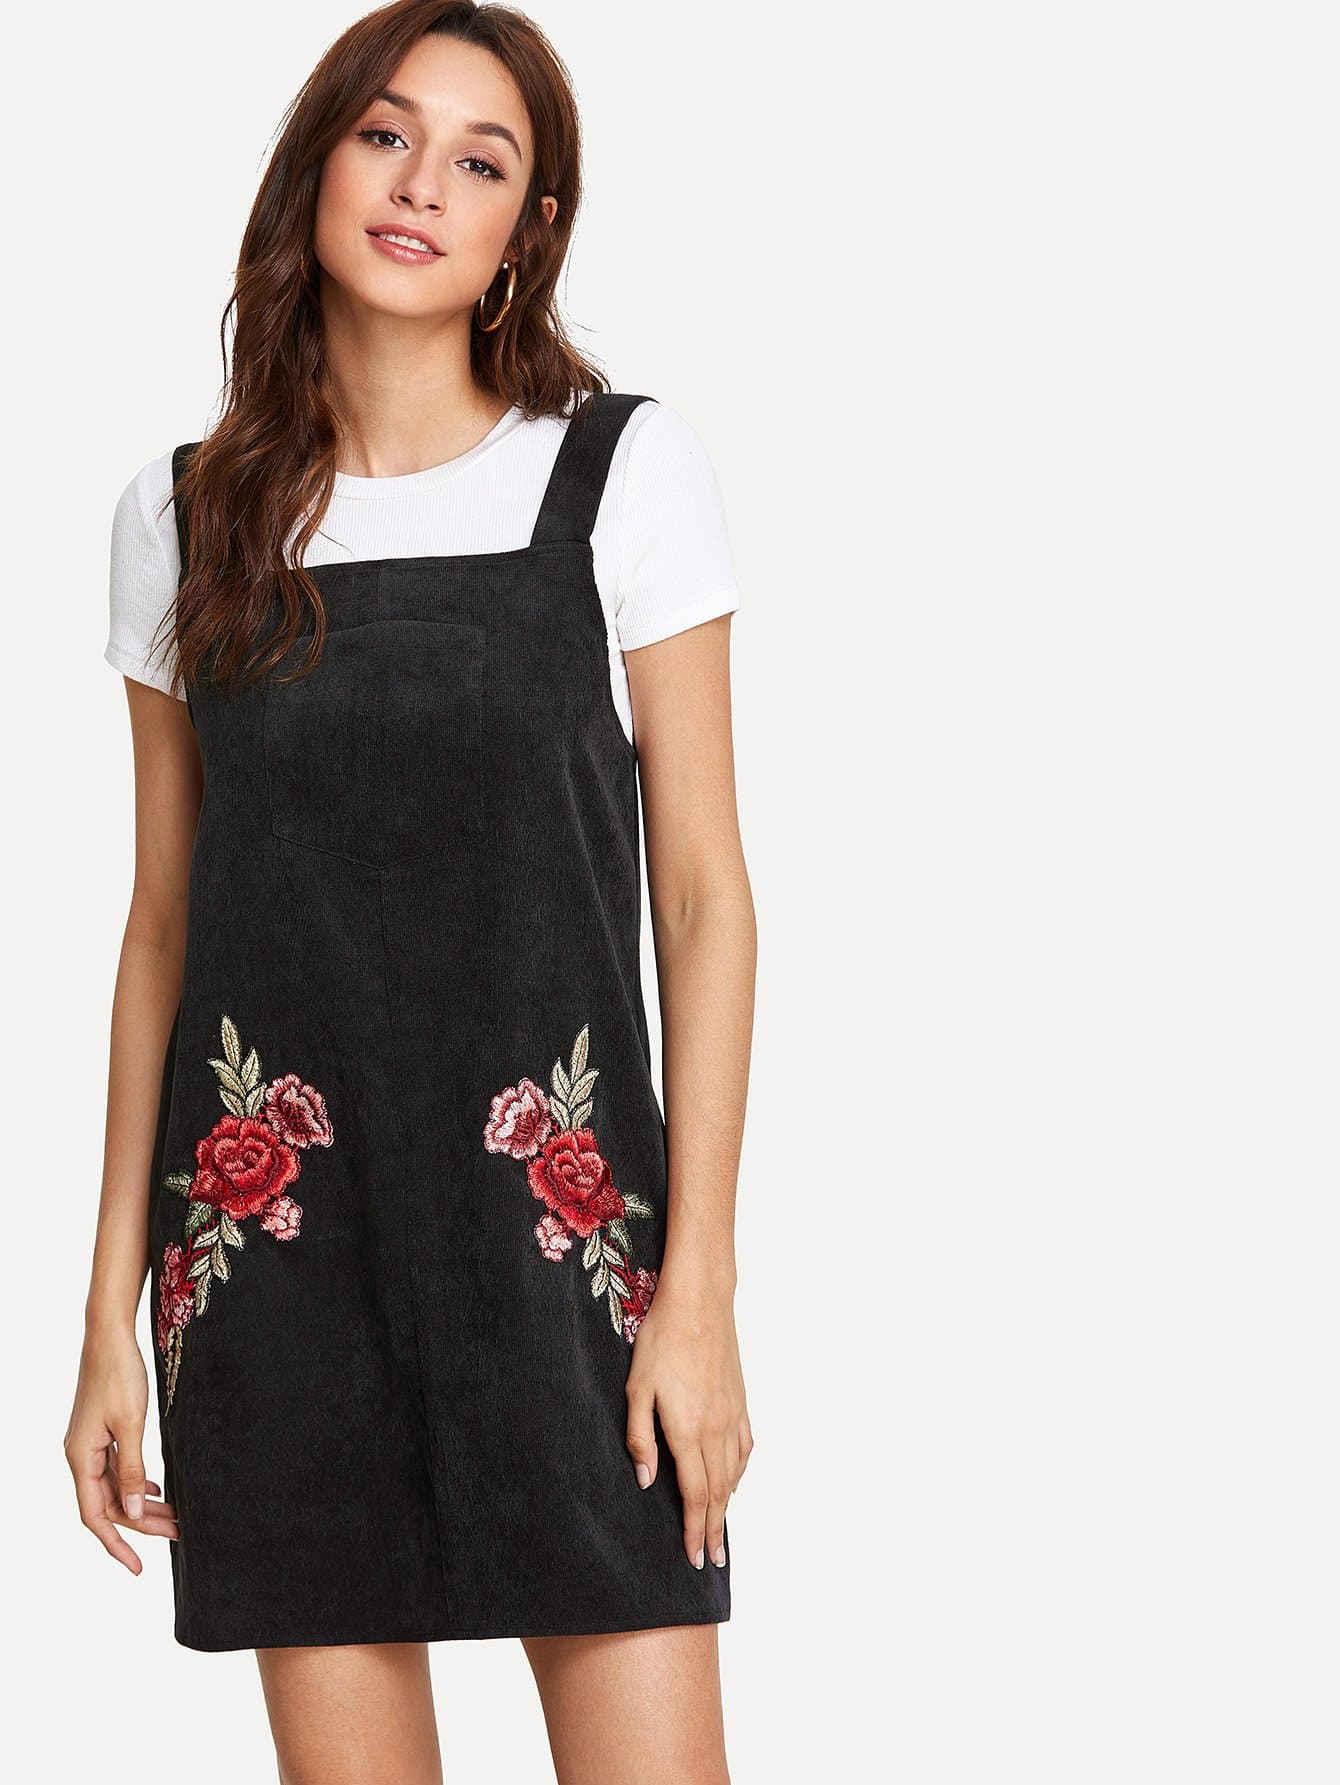 Flower Embroidery Applique Overall Dress overall yumi overall